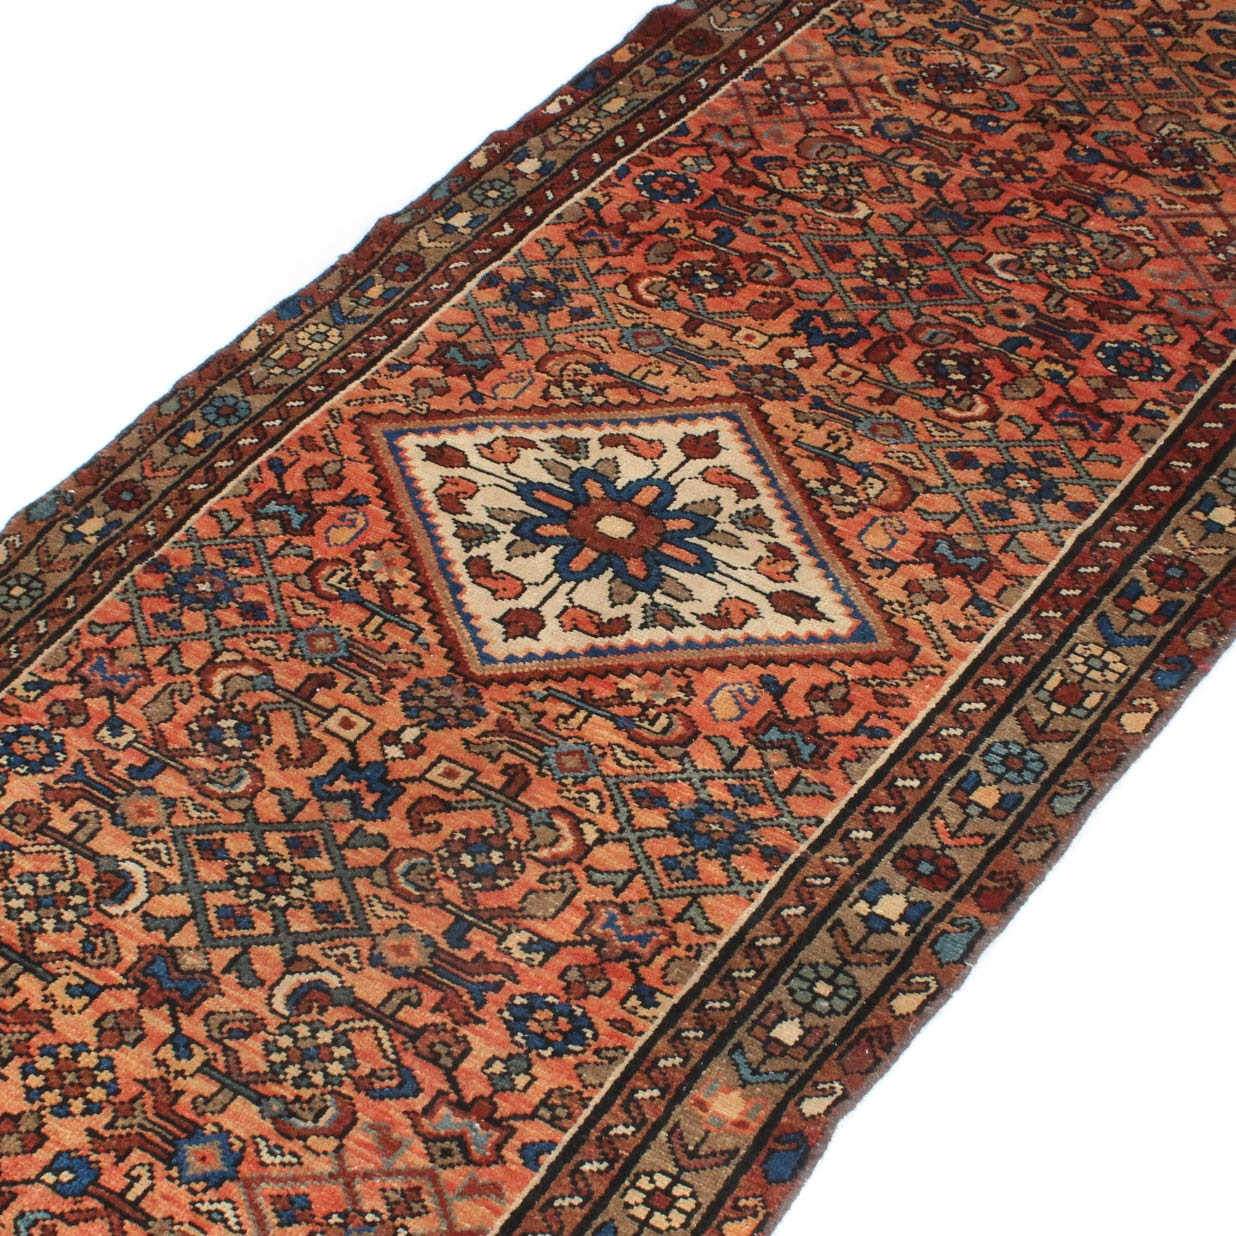 3' x 9' Vintage Hand-Knotted Persian Mallayer Sarouk Rug Runner